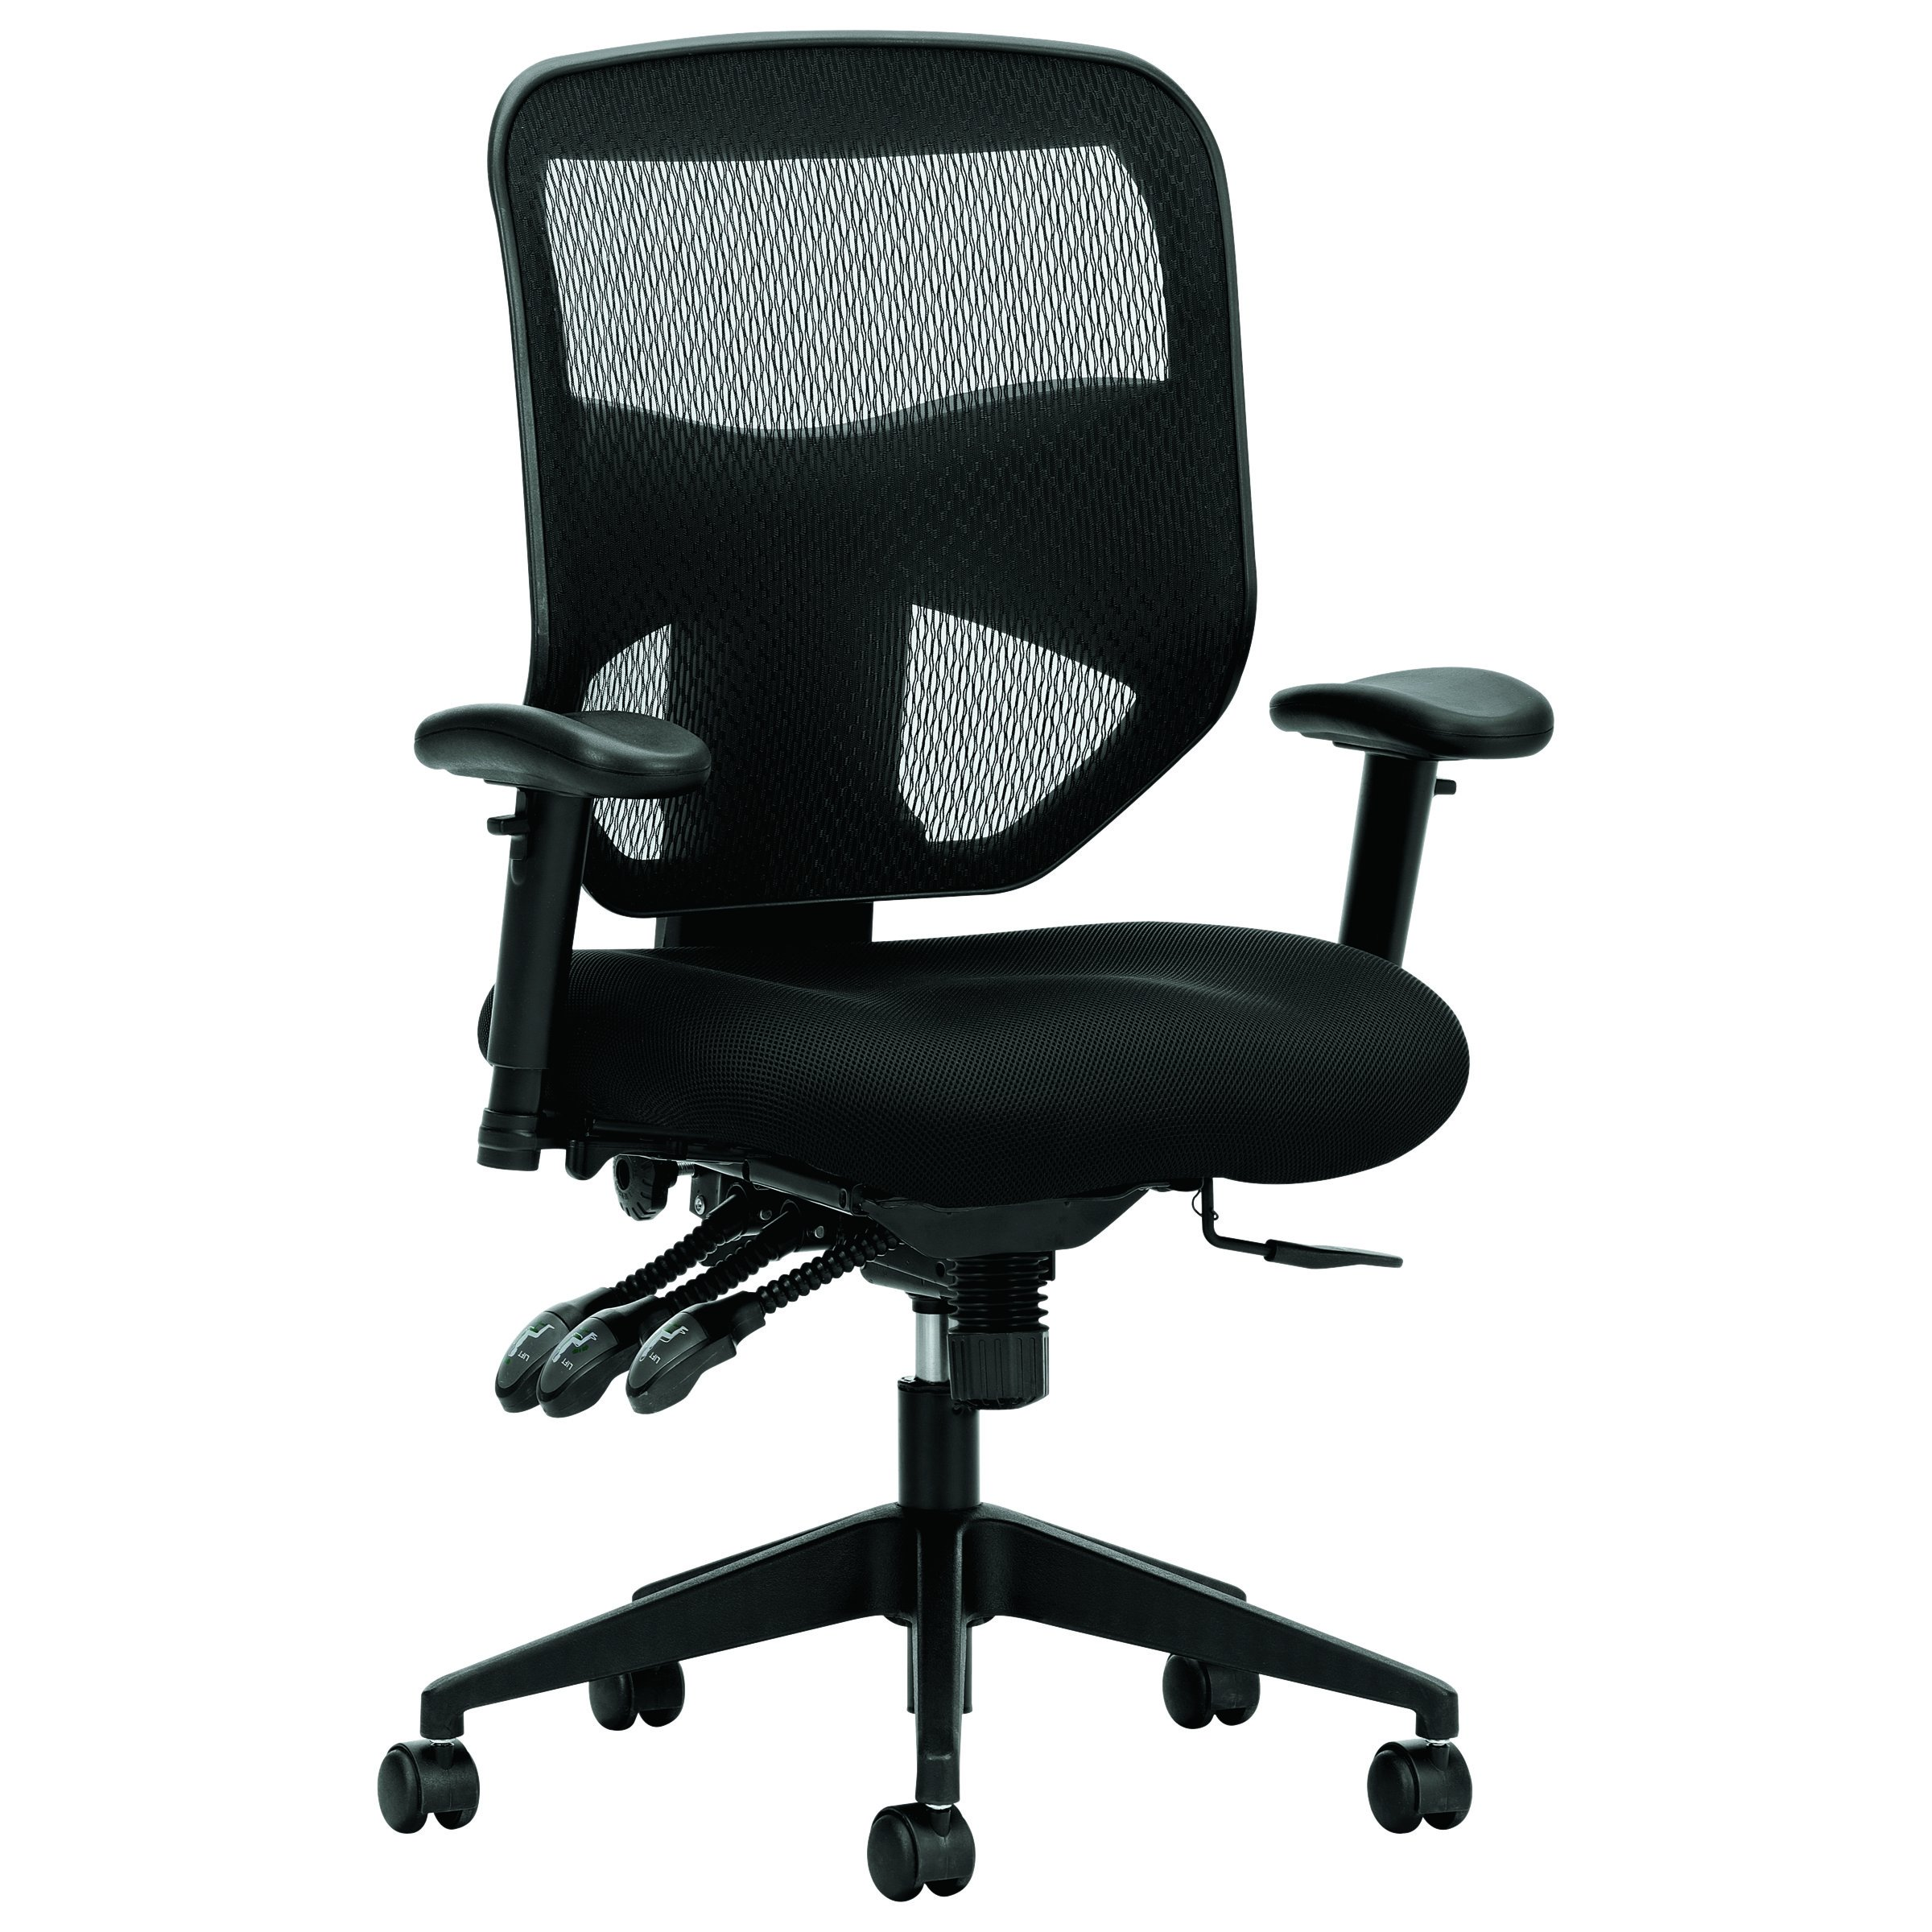 basyx by HON High Back Task Chair - Mesh Computer Chair with Arms for Office Desk, Black (HVL532)